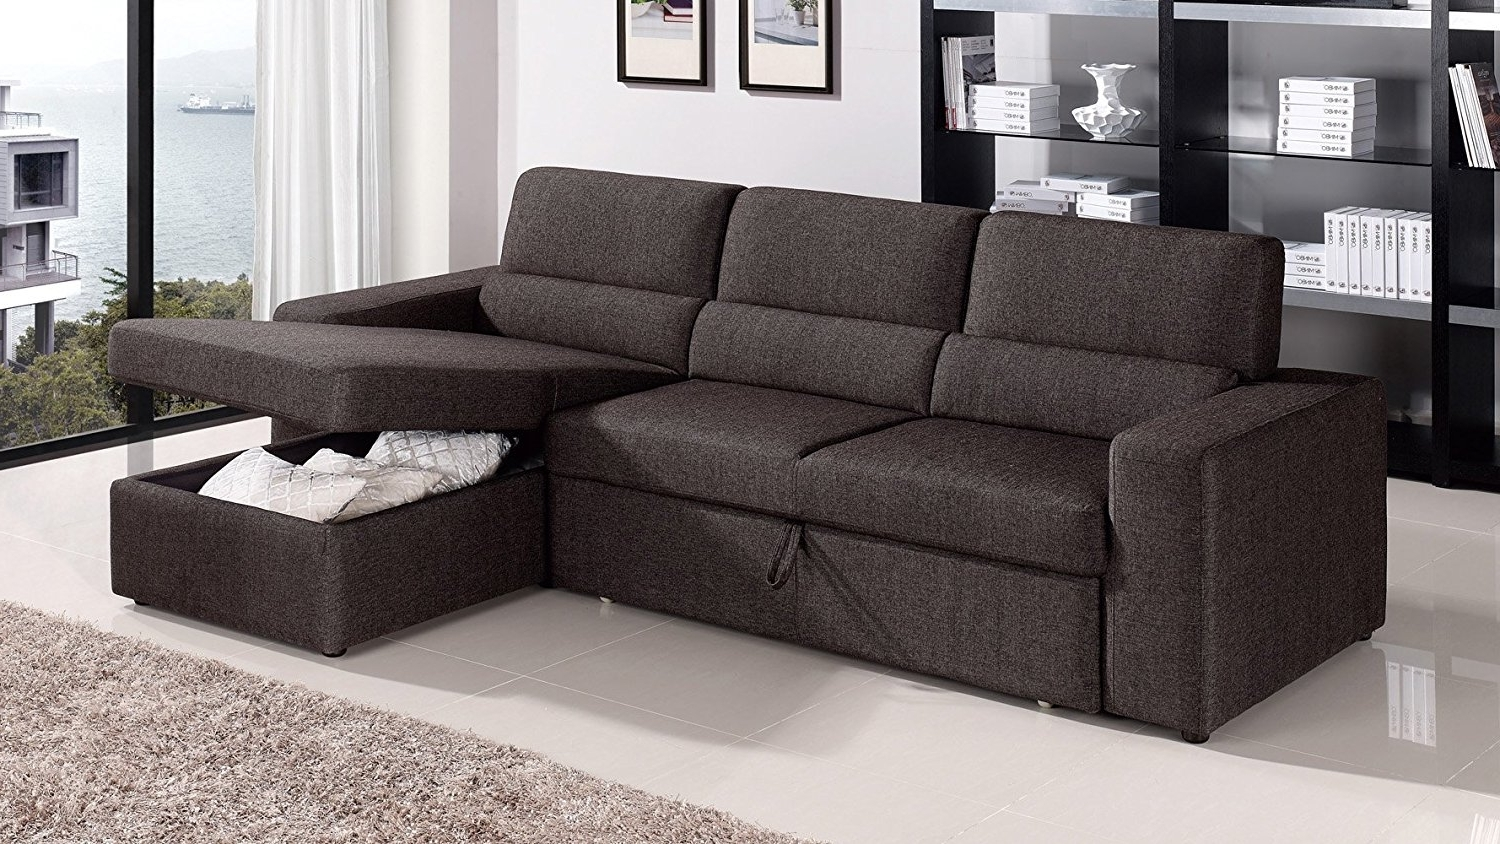 Most Recently Released Sleeper Sectional Sofas Regarding Amazon: Black/brown Clubber Sleeper Sectional Sofa – Right (View 4 of 15)